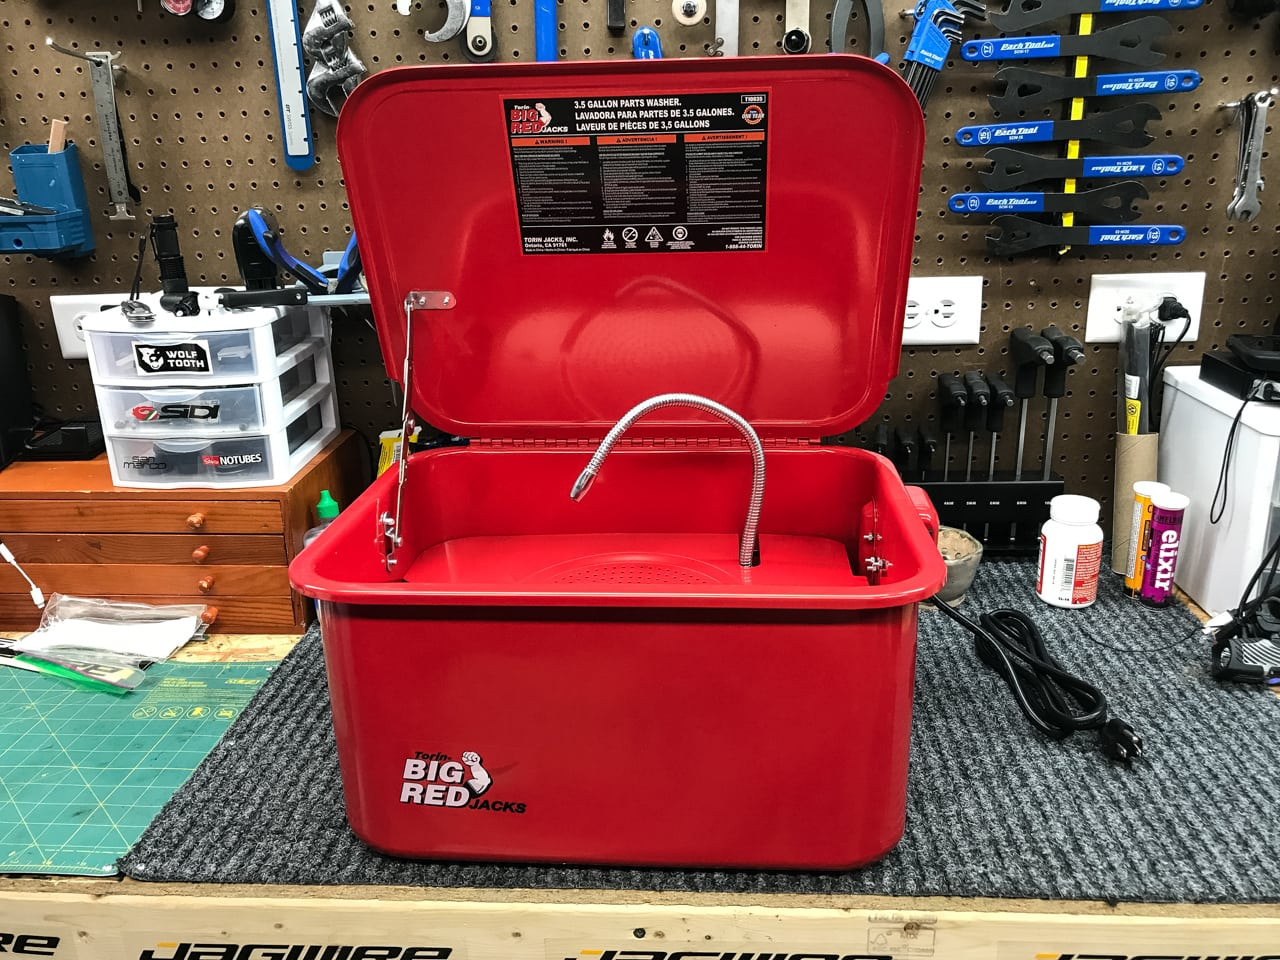 Torin T10035 Big Red 3.5 Gallon Parts Washer